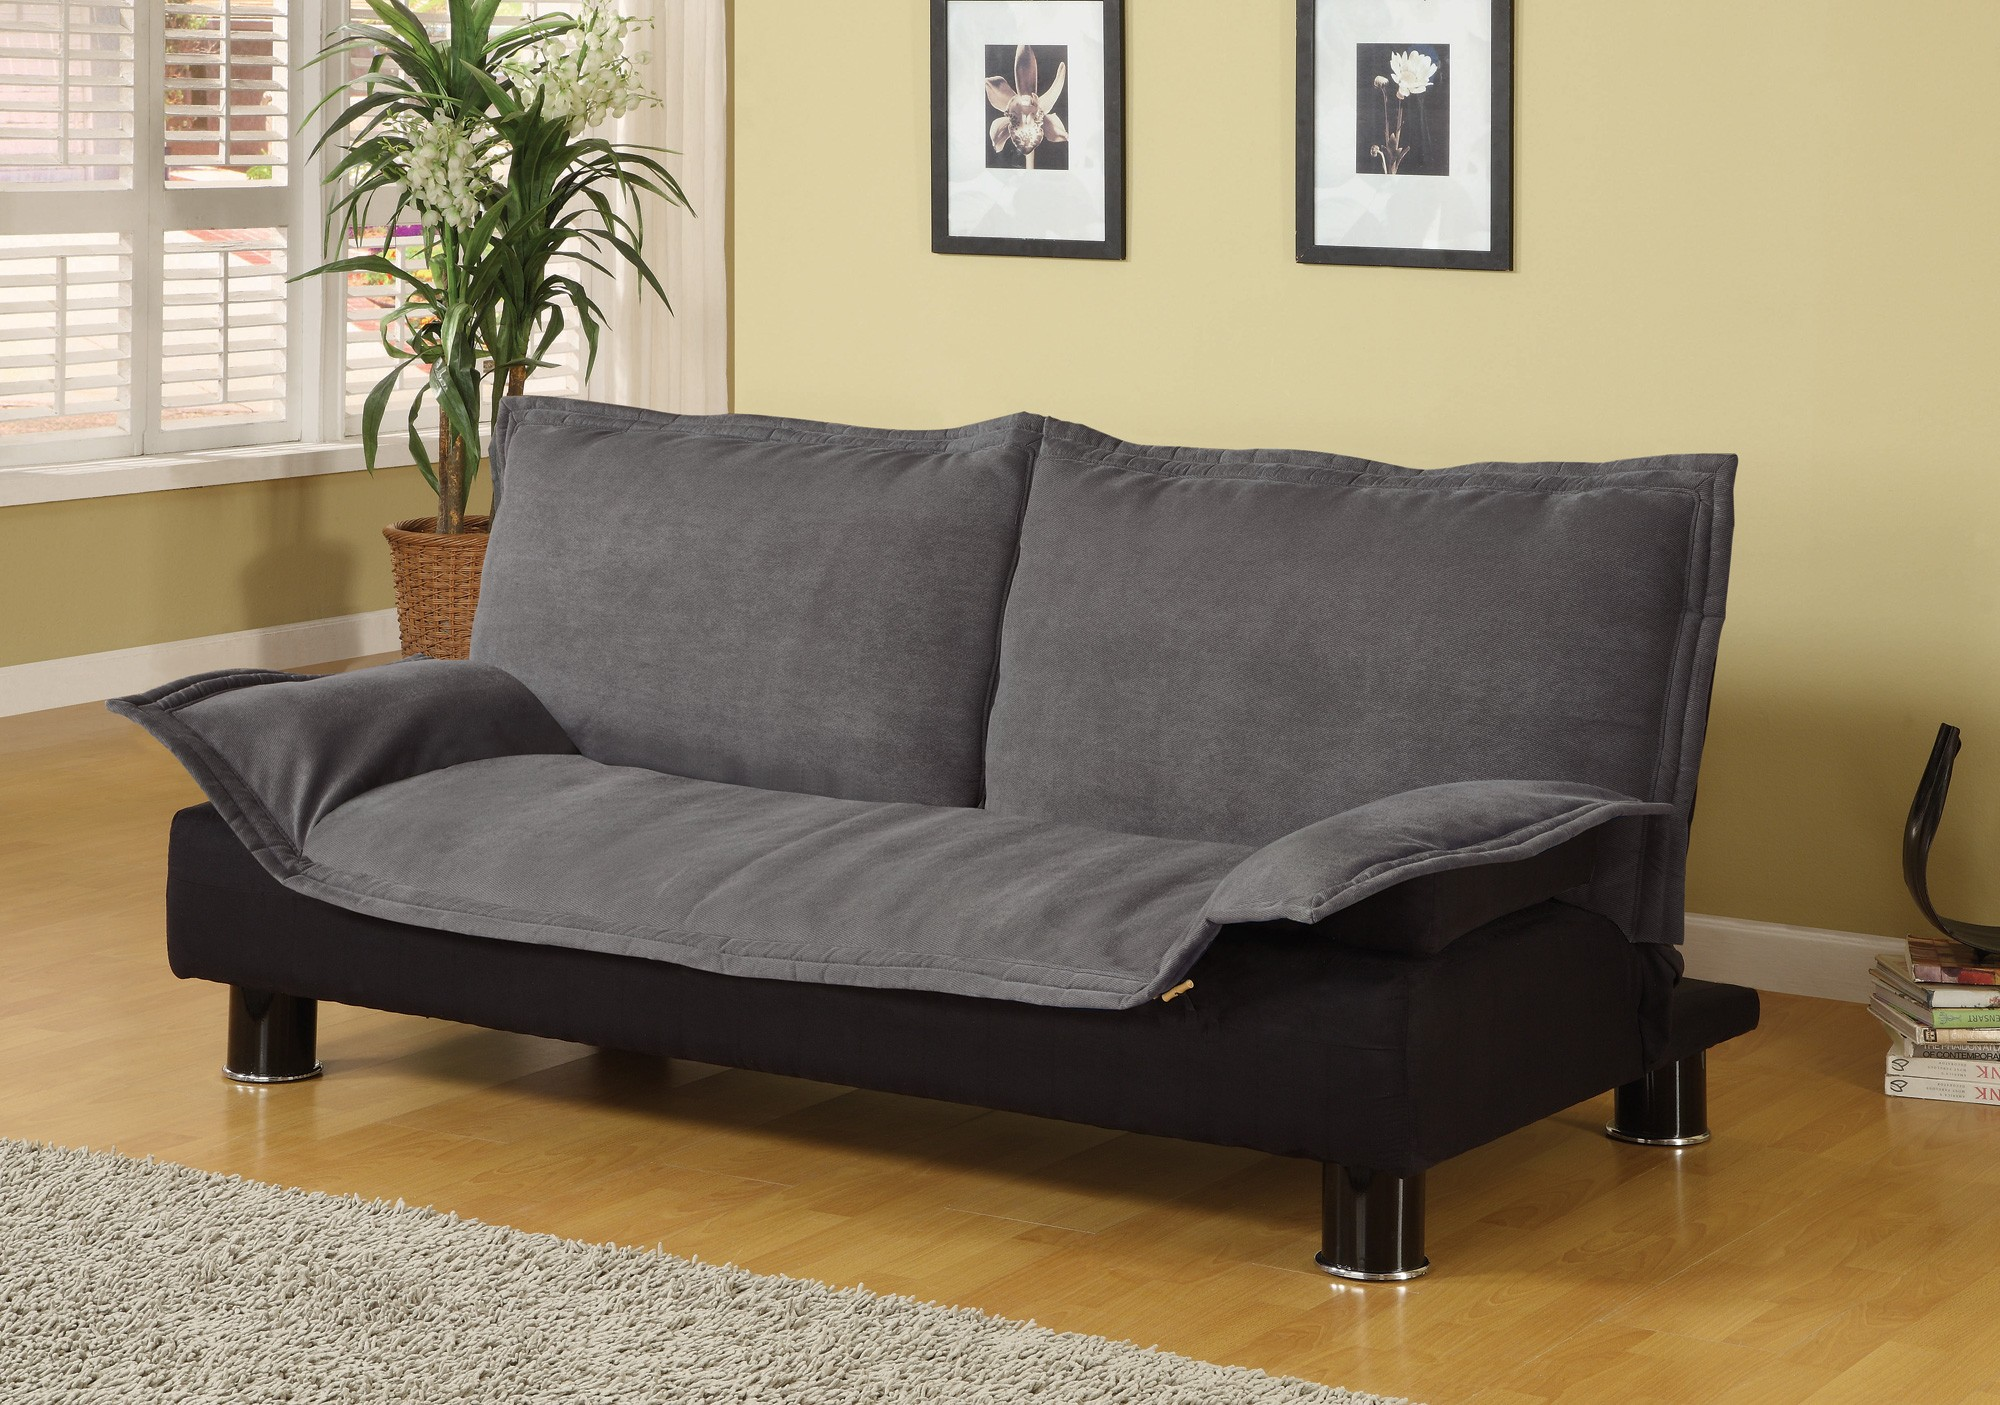 Convertible Sofa Bed 300177 From Coaster 300177 Coleman Furniture